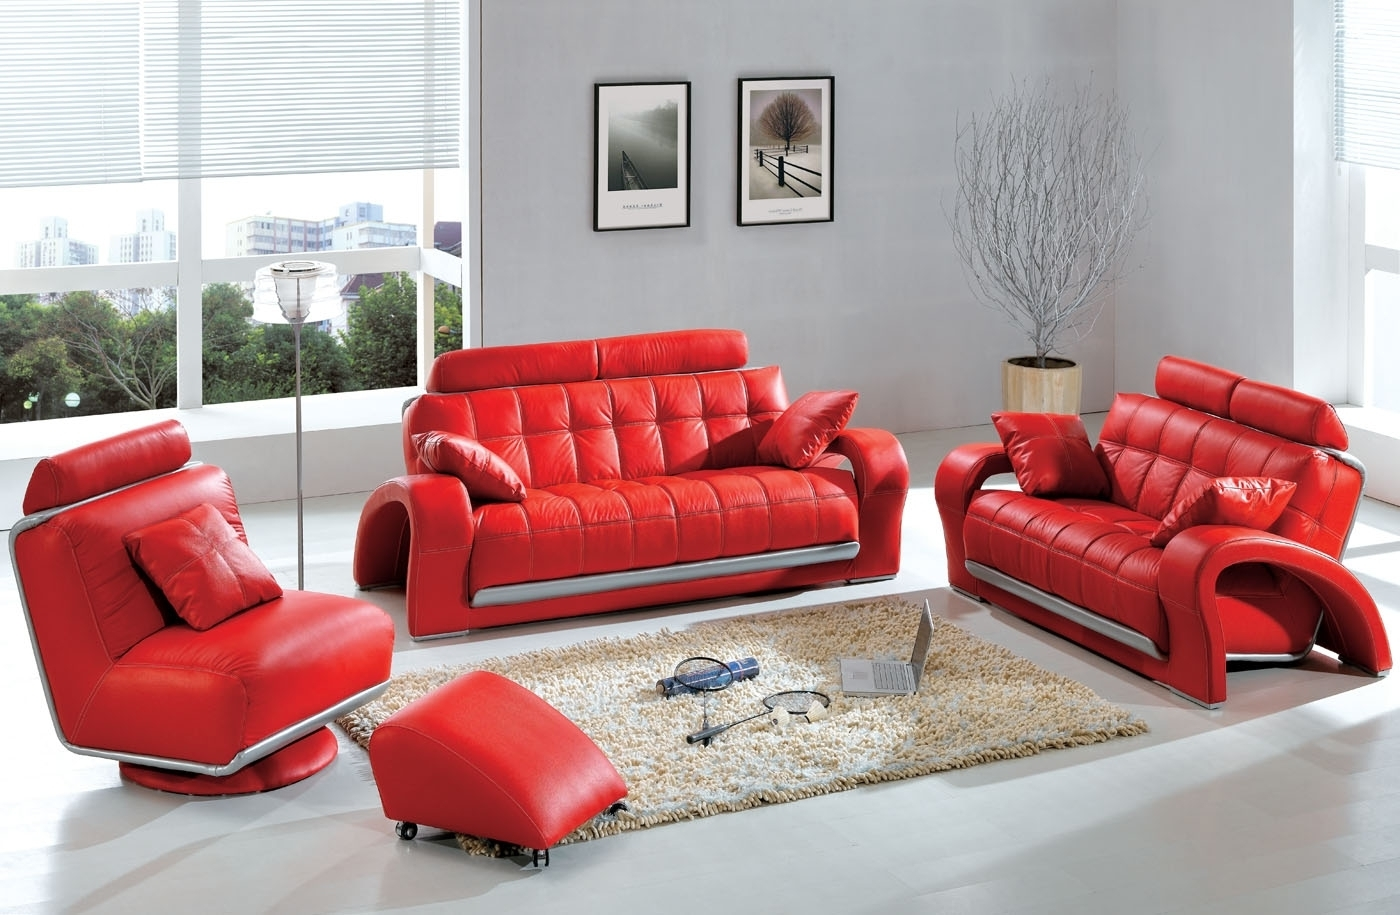 Most Recent Red Leather Couches For Living Room Within Modern & Contemporary Leather Sofa & Sectional Sets (View 7 of 15)